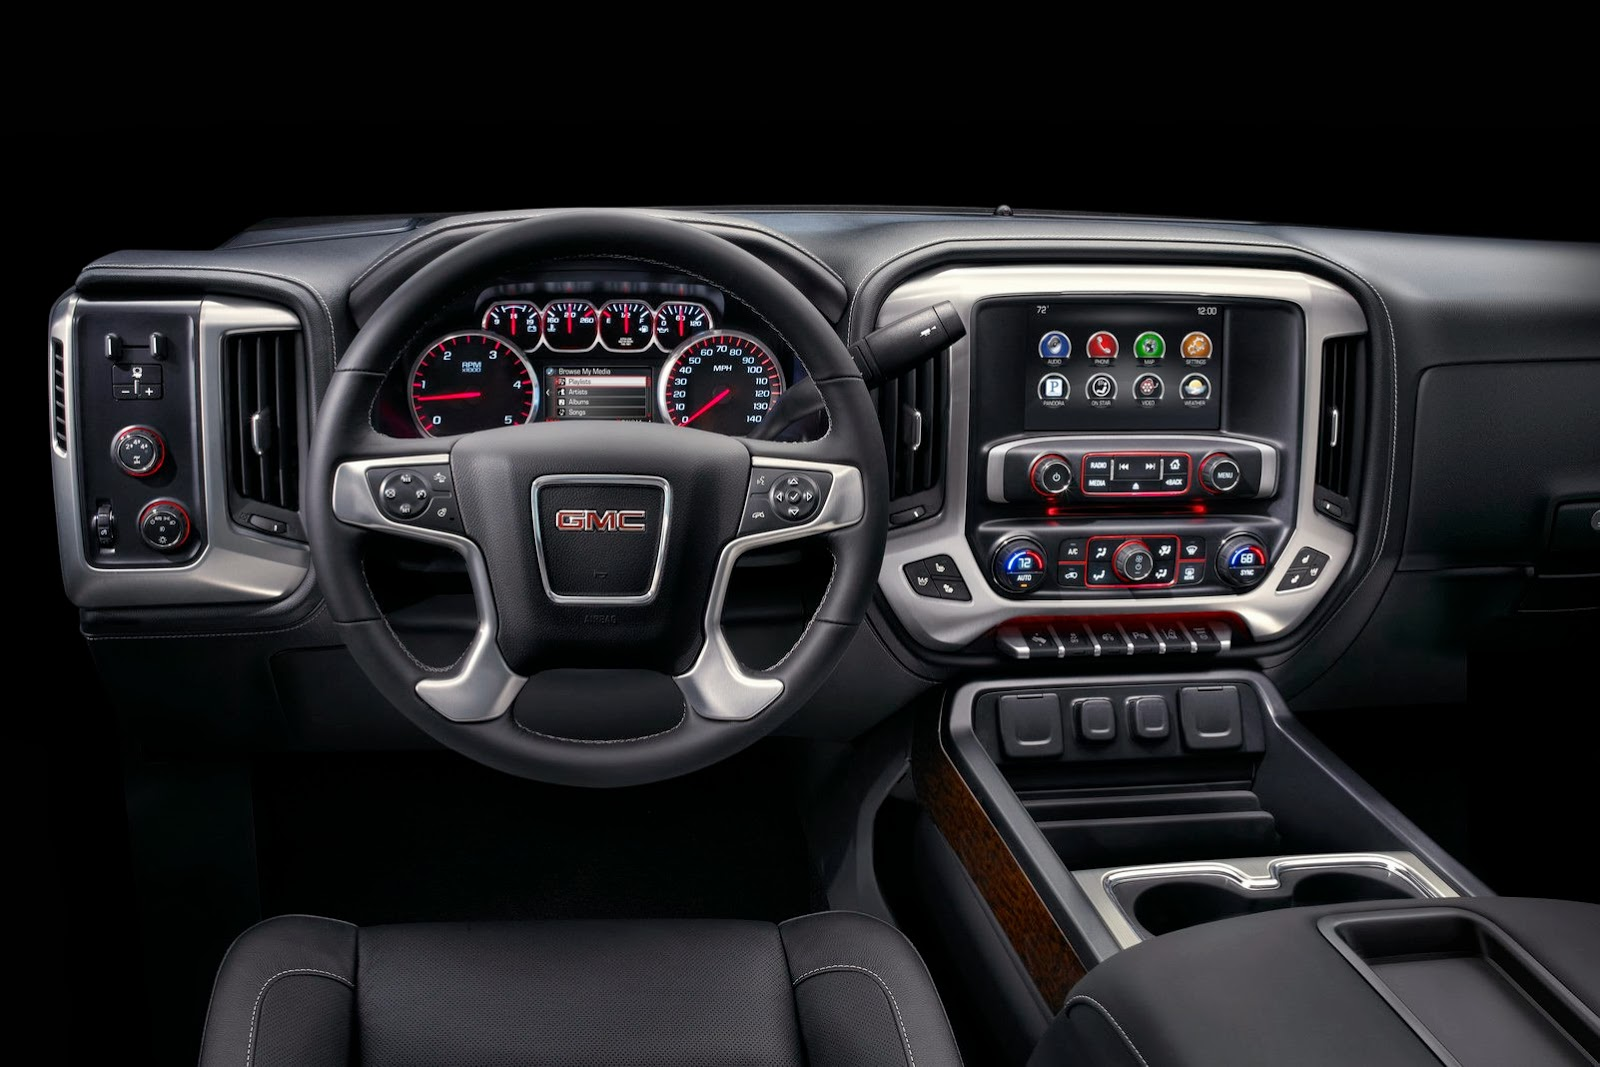 2015 Sierra 2500 Heavy Duty Pickup Trucks Dashboard and Cockpit